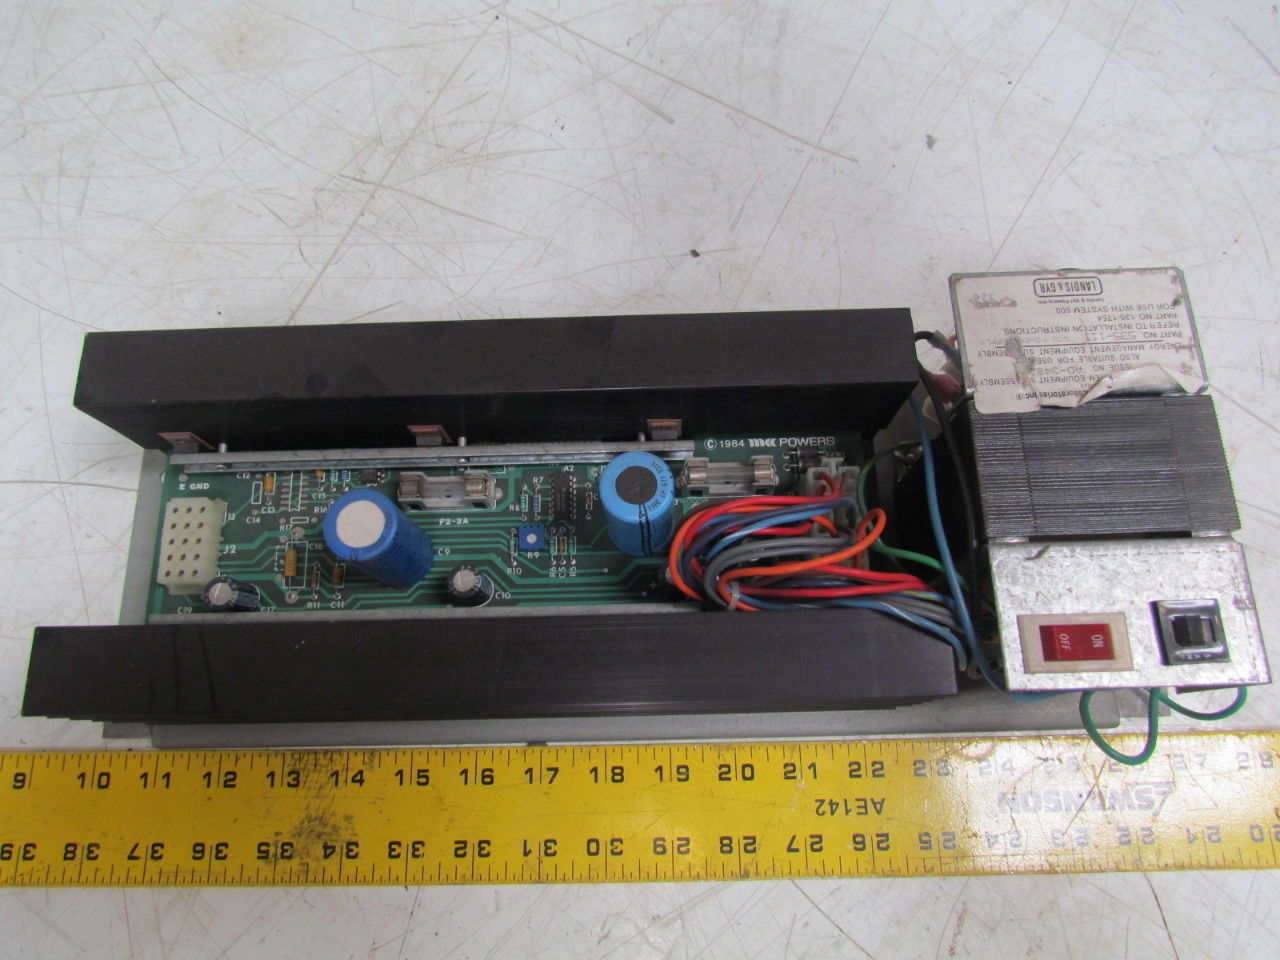 Siemens 535-111 SCU Power Supply Stand Alone Control unit